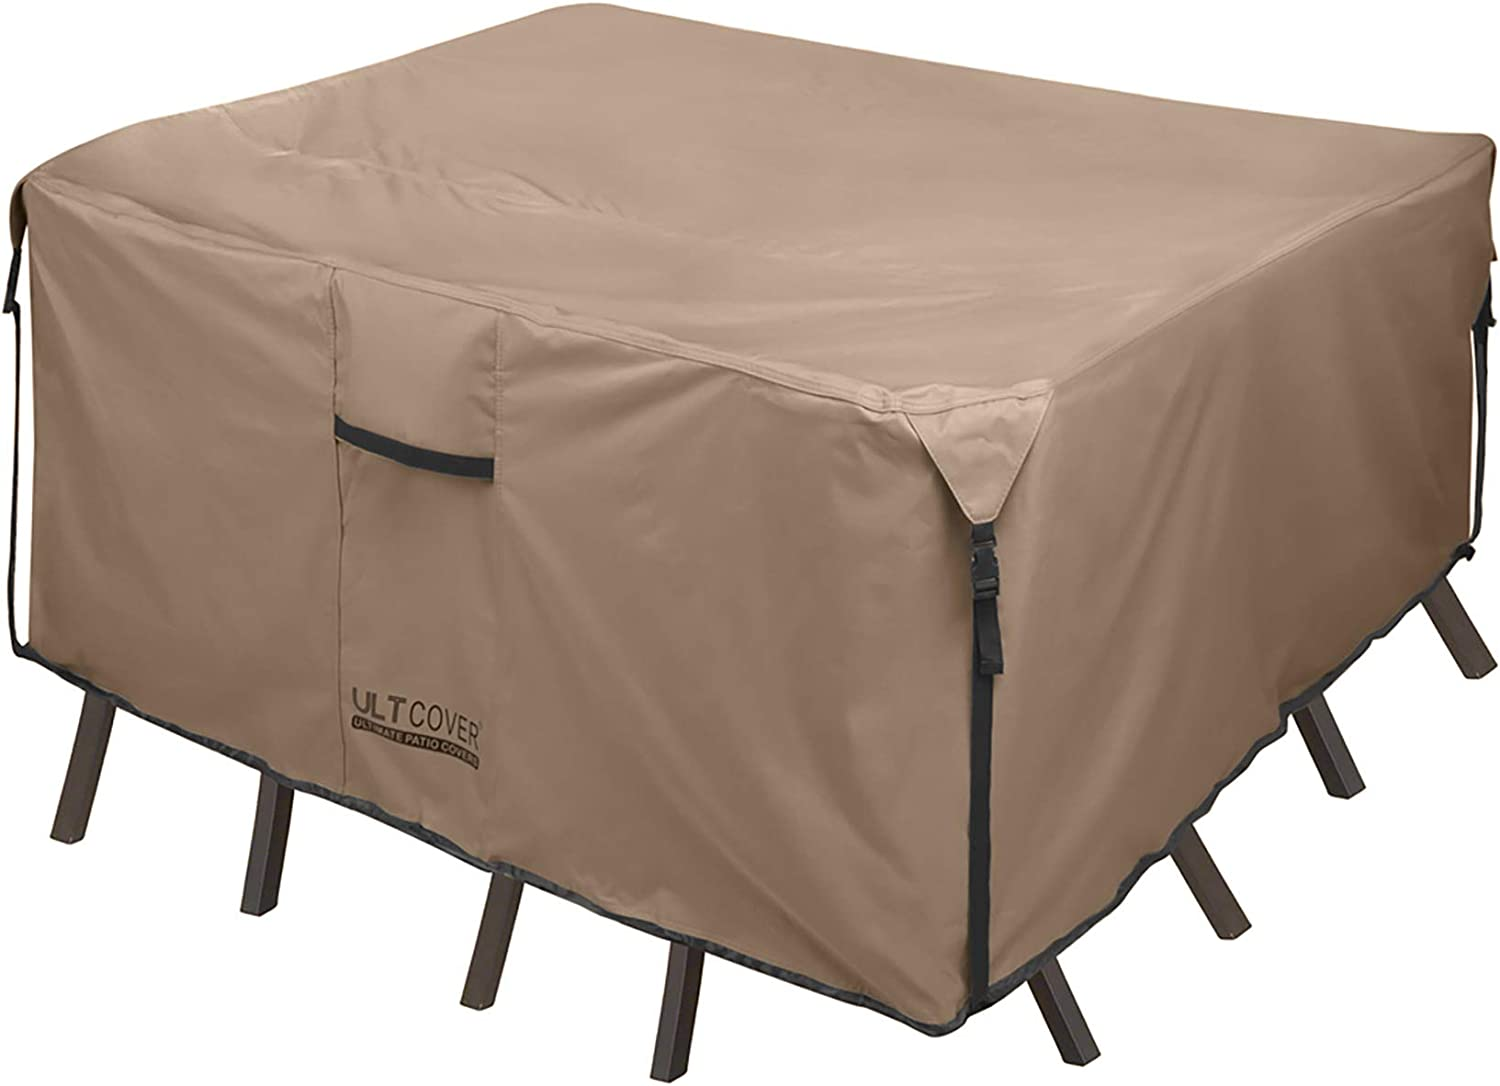 Amazon Com Ultcover Square Patio Heavy Duty Table Cover 600d Tough Canvas Waterproof Outdoor Dining Table And Chairs General Purpose Furniture Cover Size 54 Inch Garden Outdoor